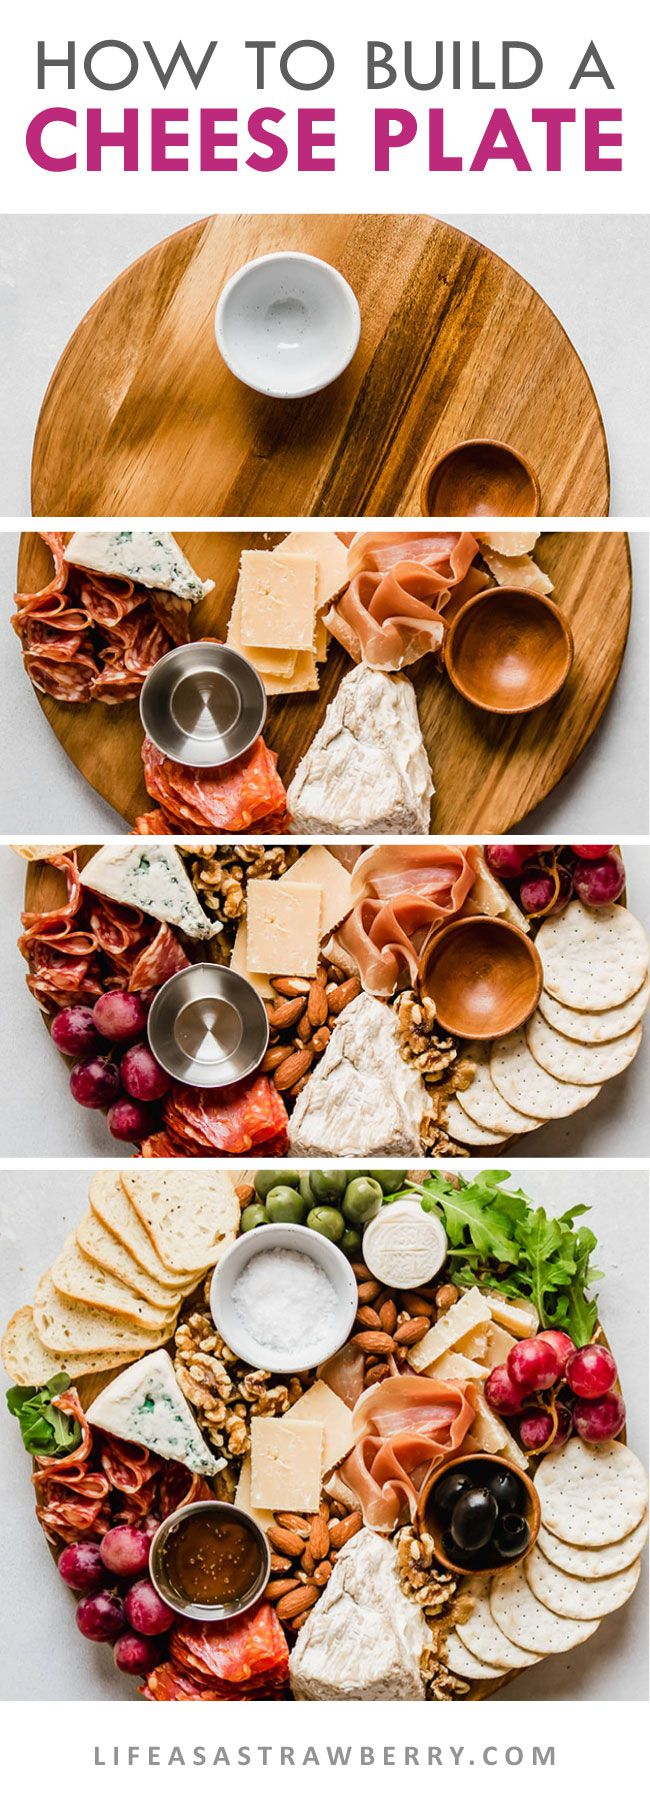 How to Make a Cheese Plate (with step-by-step photos!)